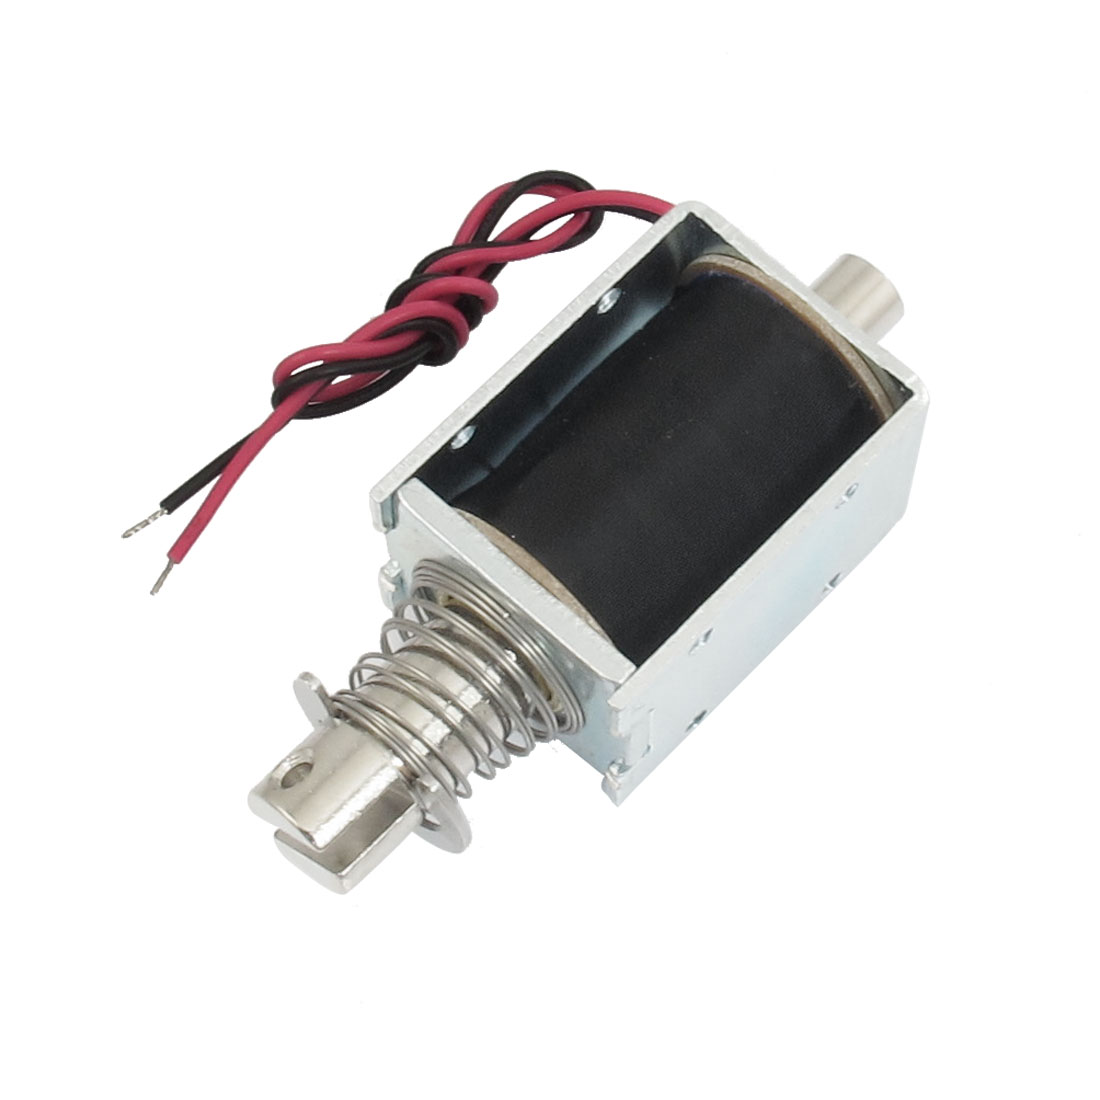 DC 6V 0.96A 10mm Stroke 0.3kg Force Push Type Solenoid Electromagnet